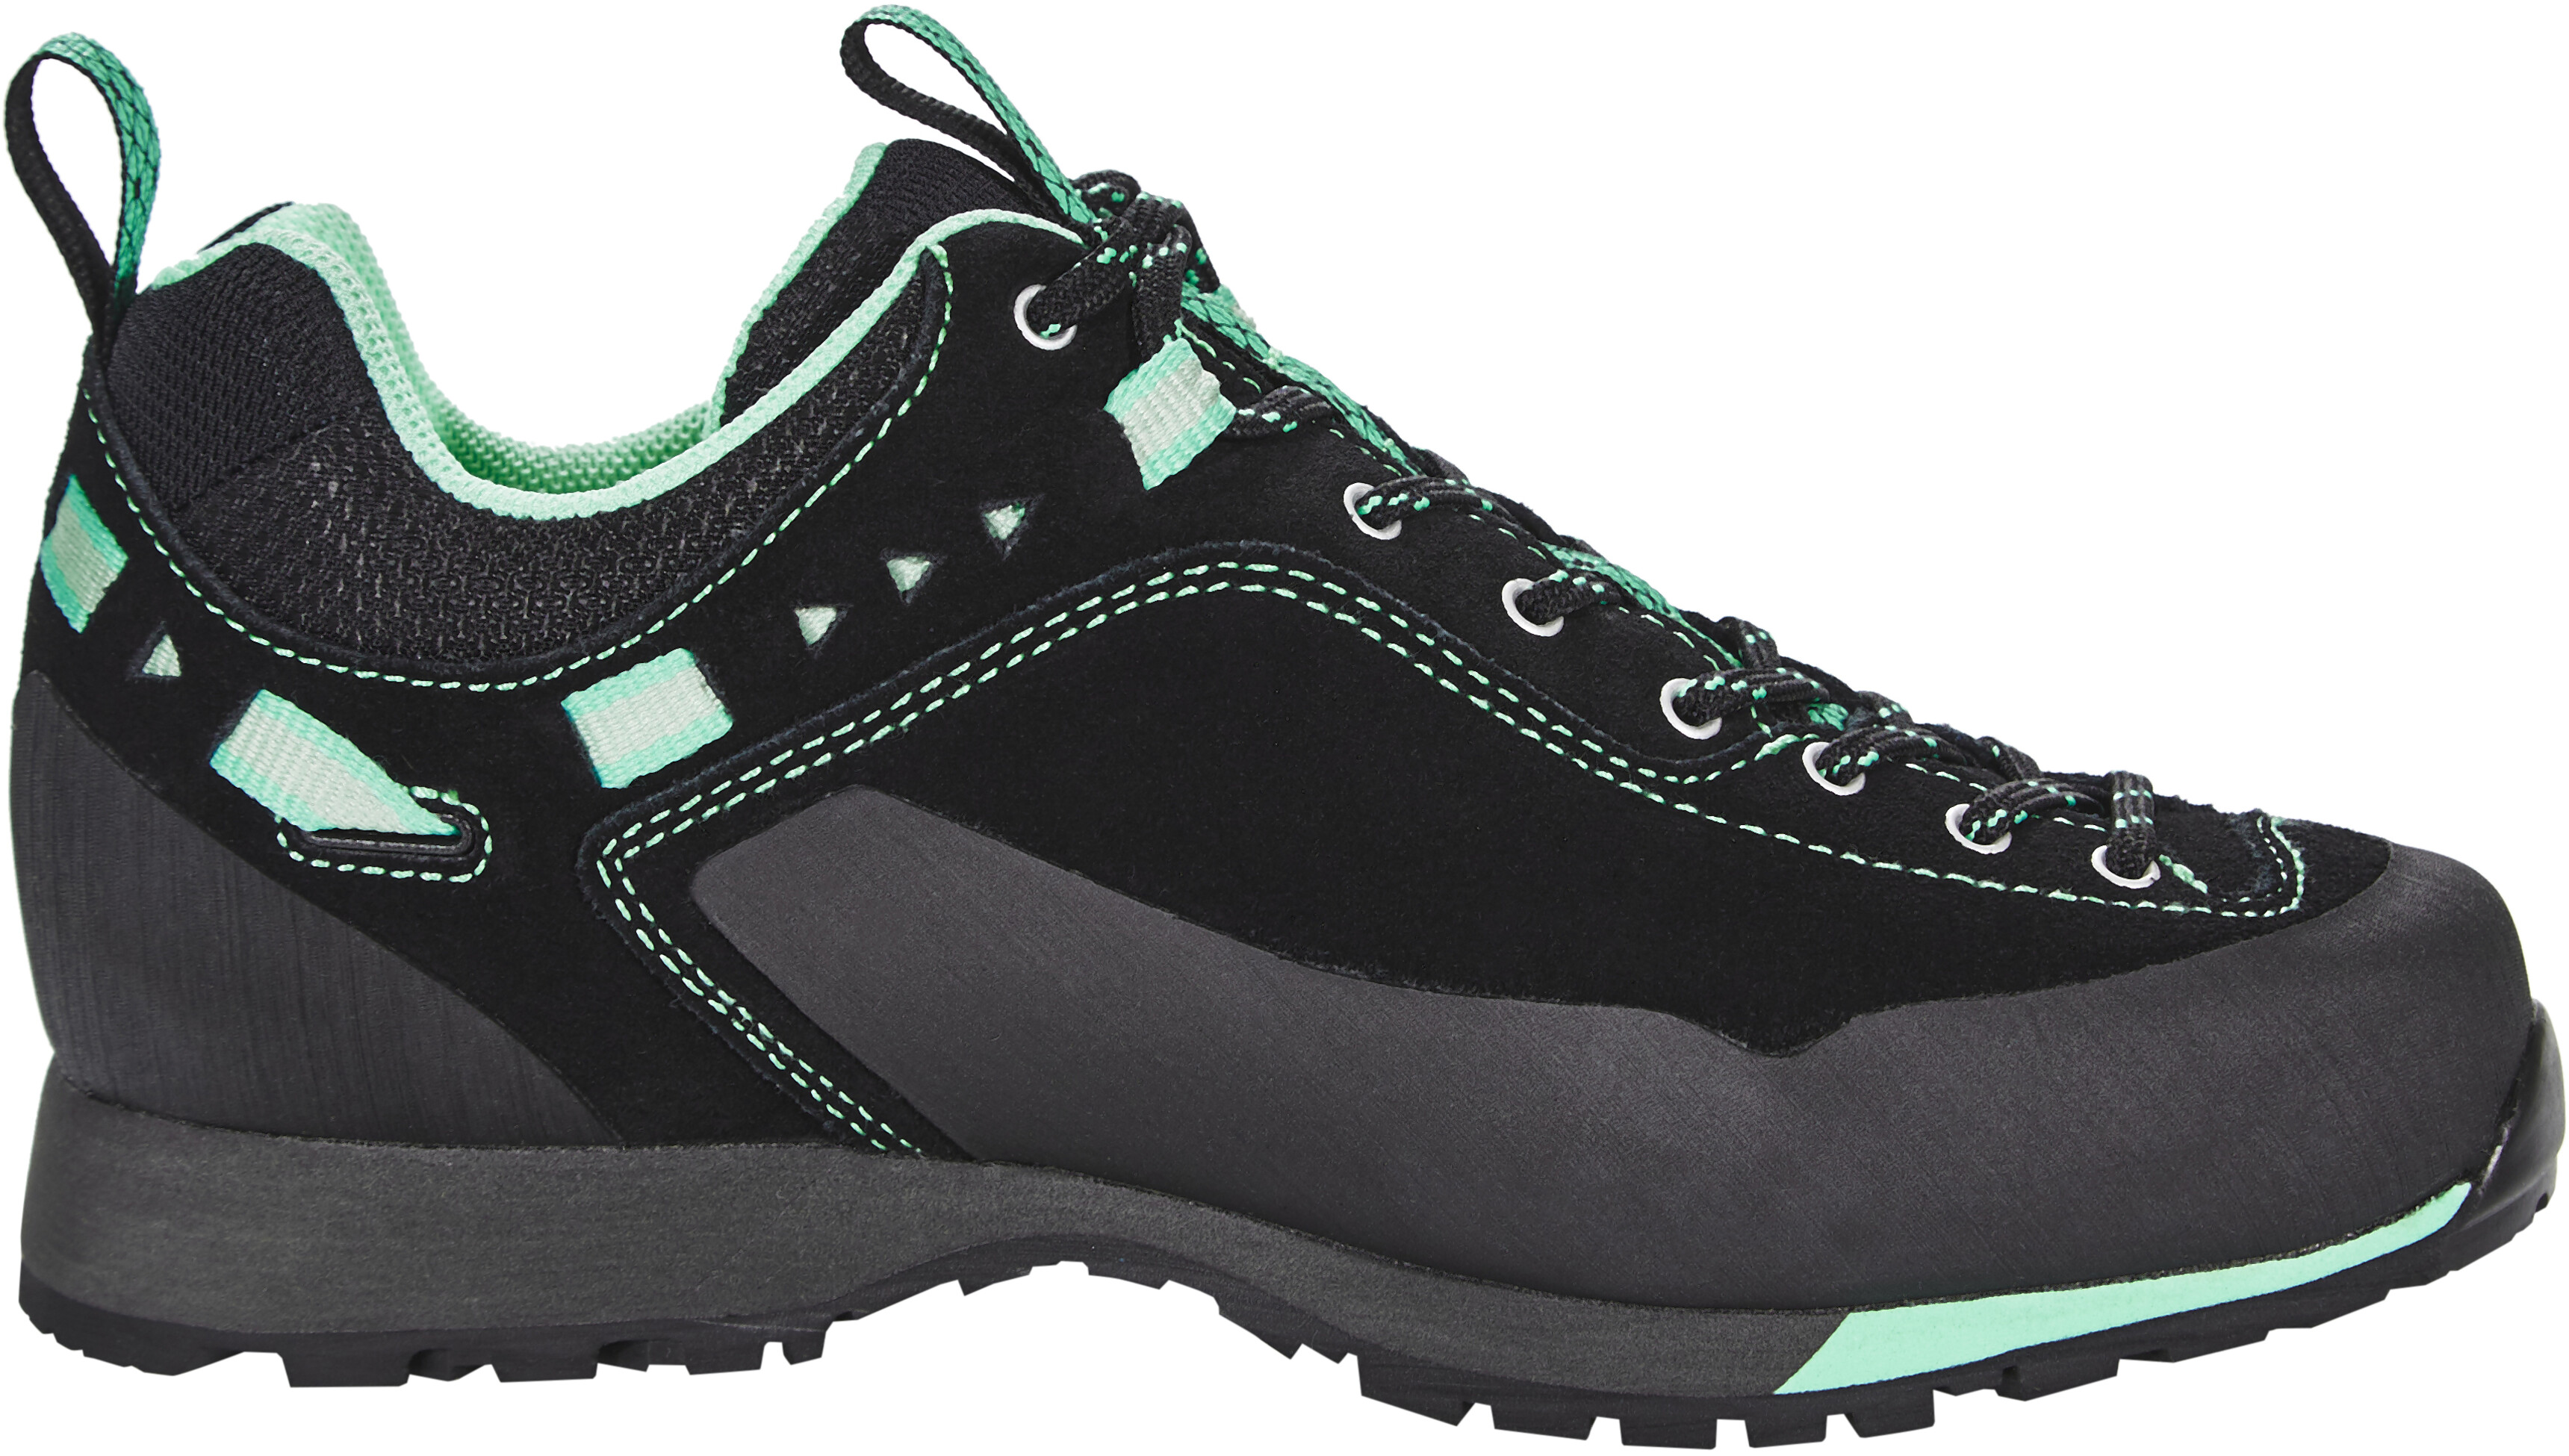 Garmont Dragontail LT - Chaussures Femme - noir turquoise 6f59ada898f9